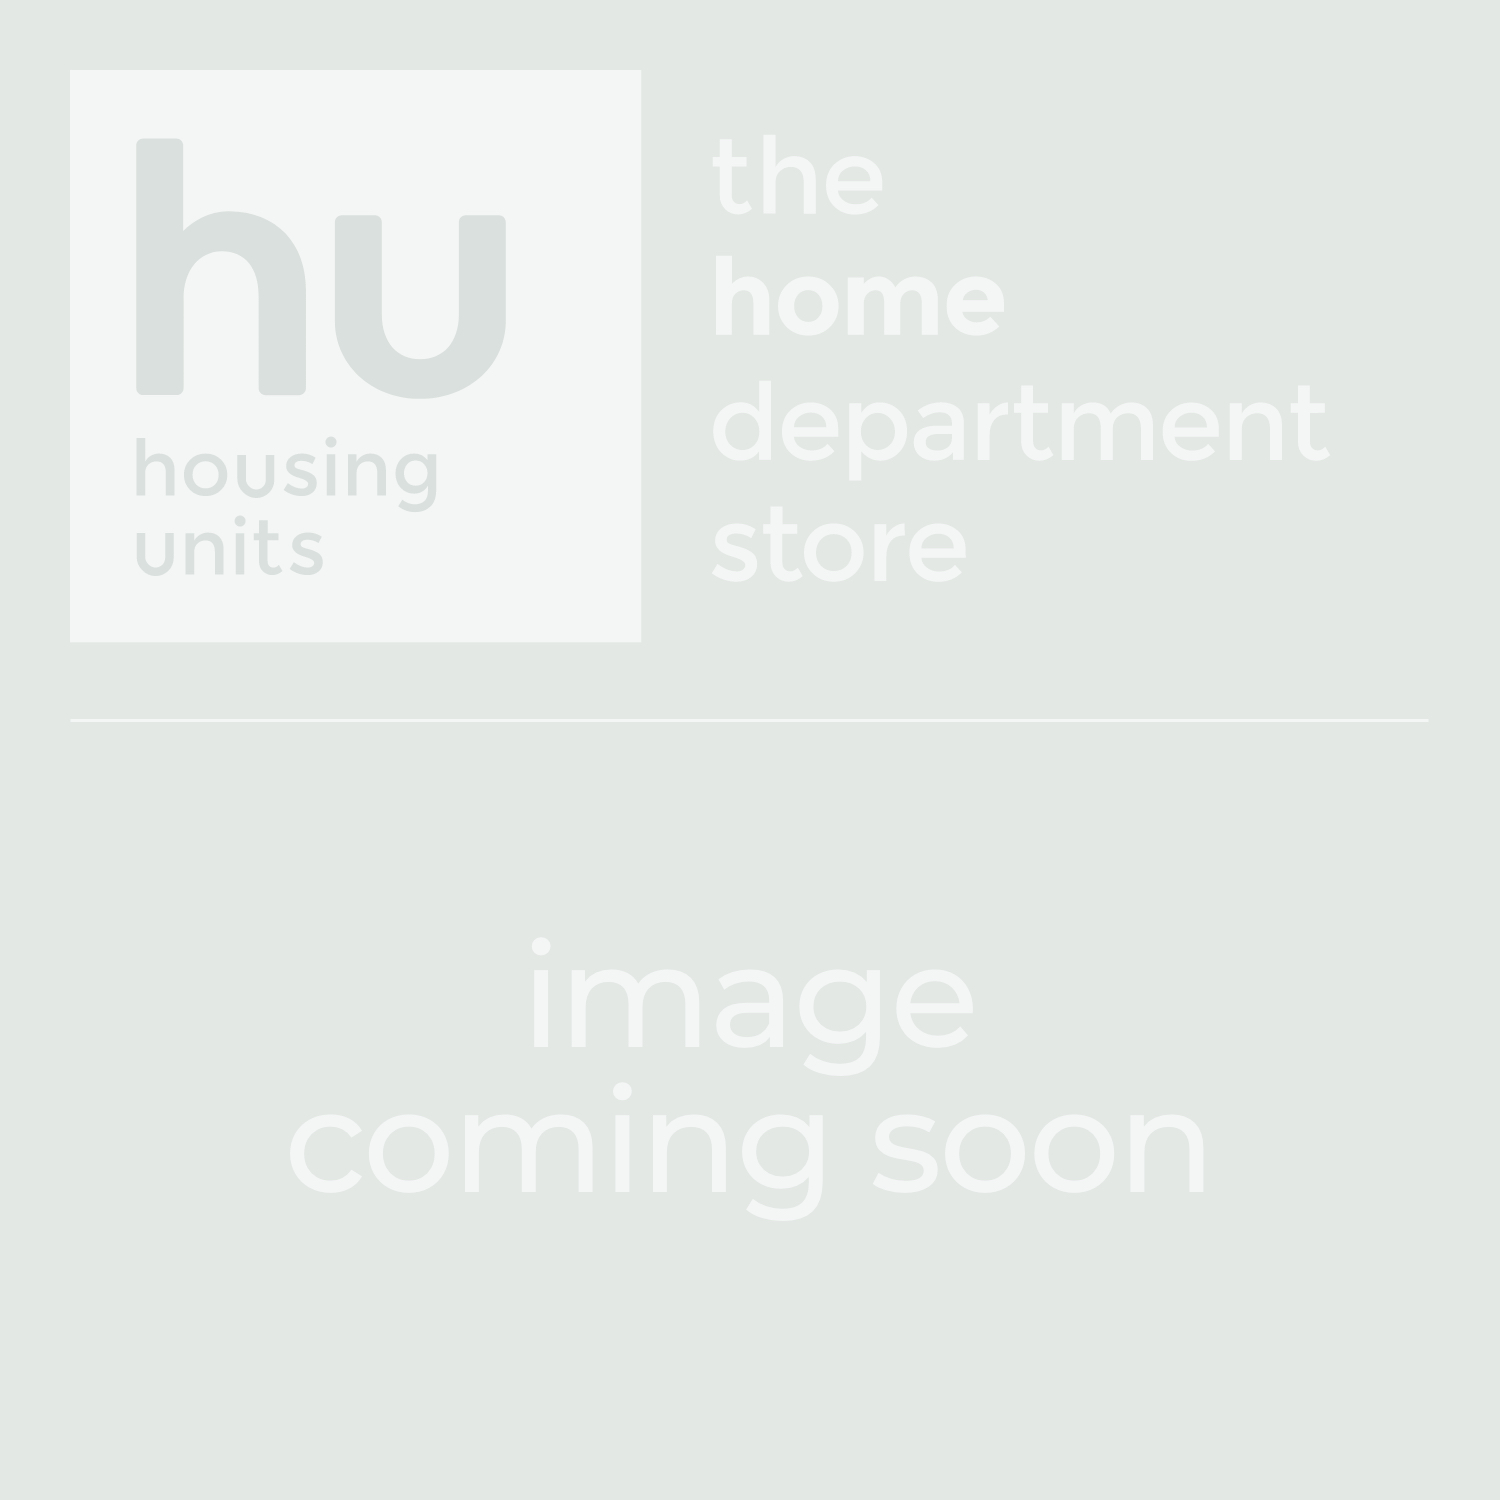 Breville New York Gloss White & Gold 4 Slice Toaster | Housing Units